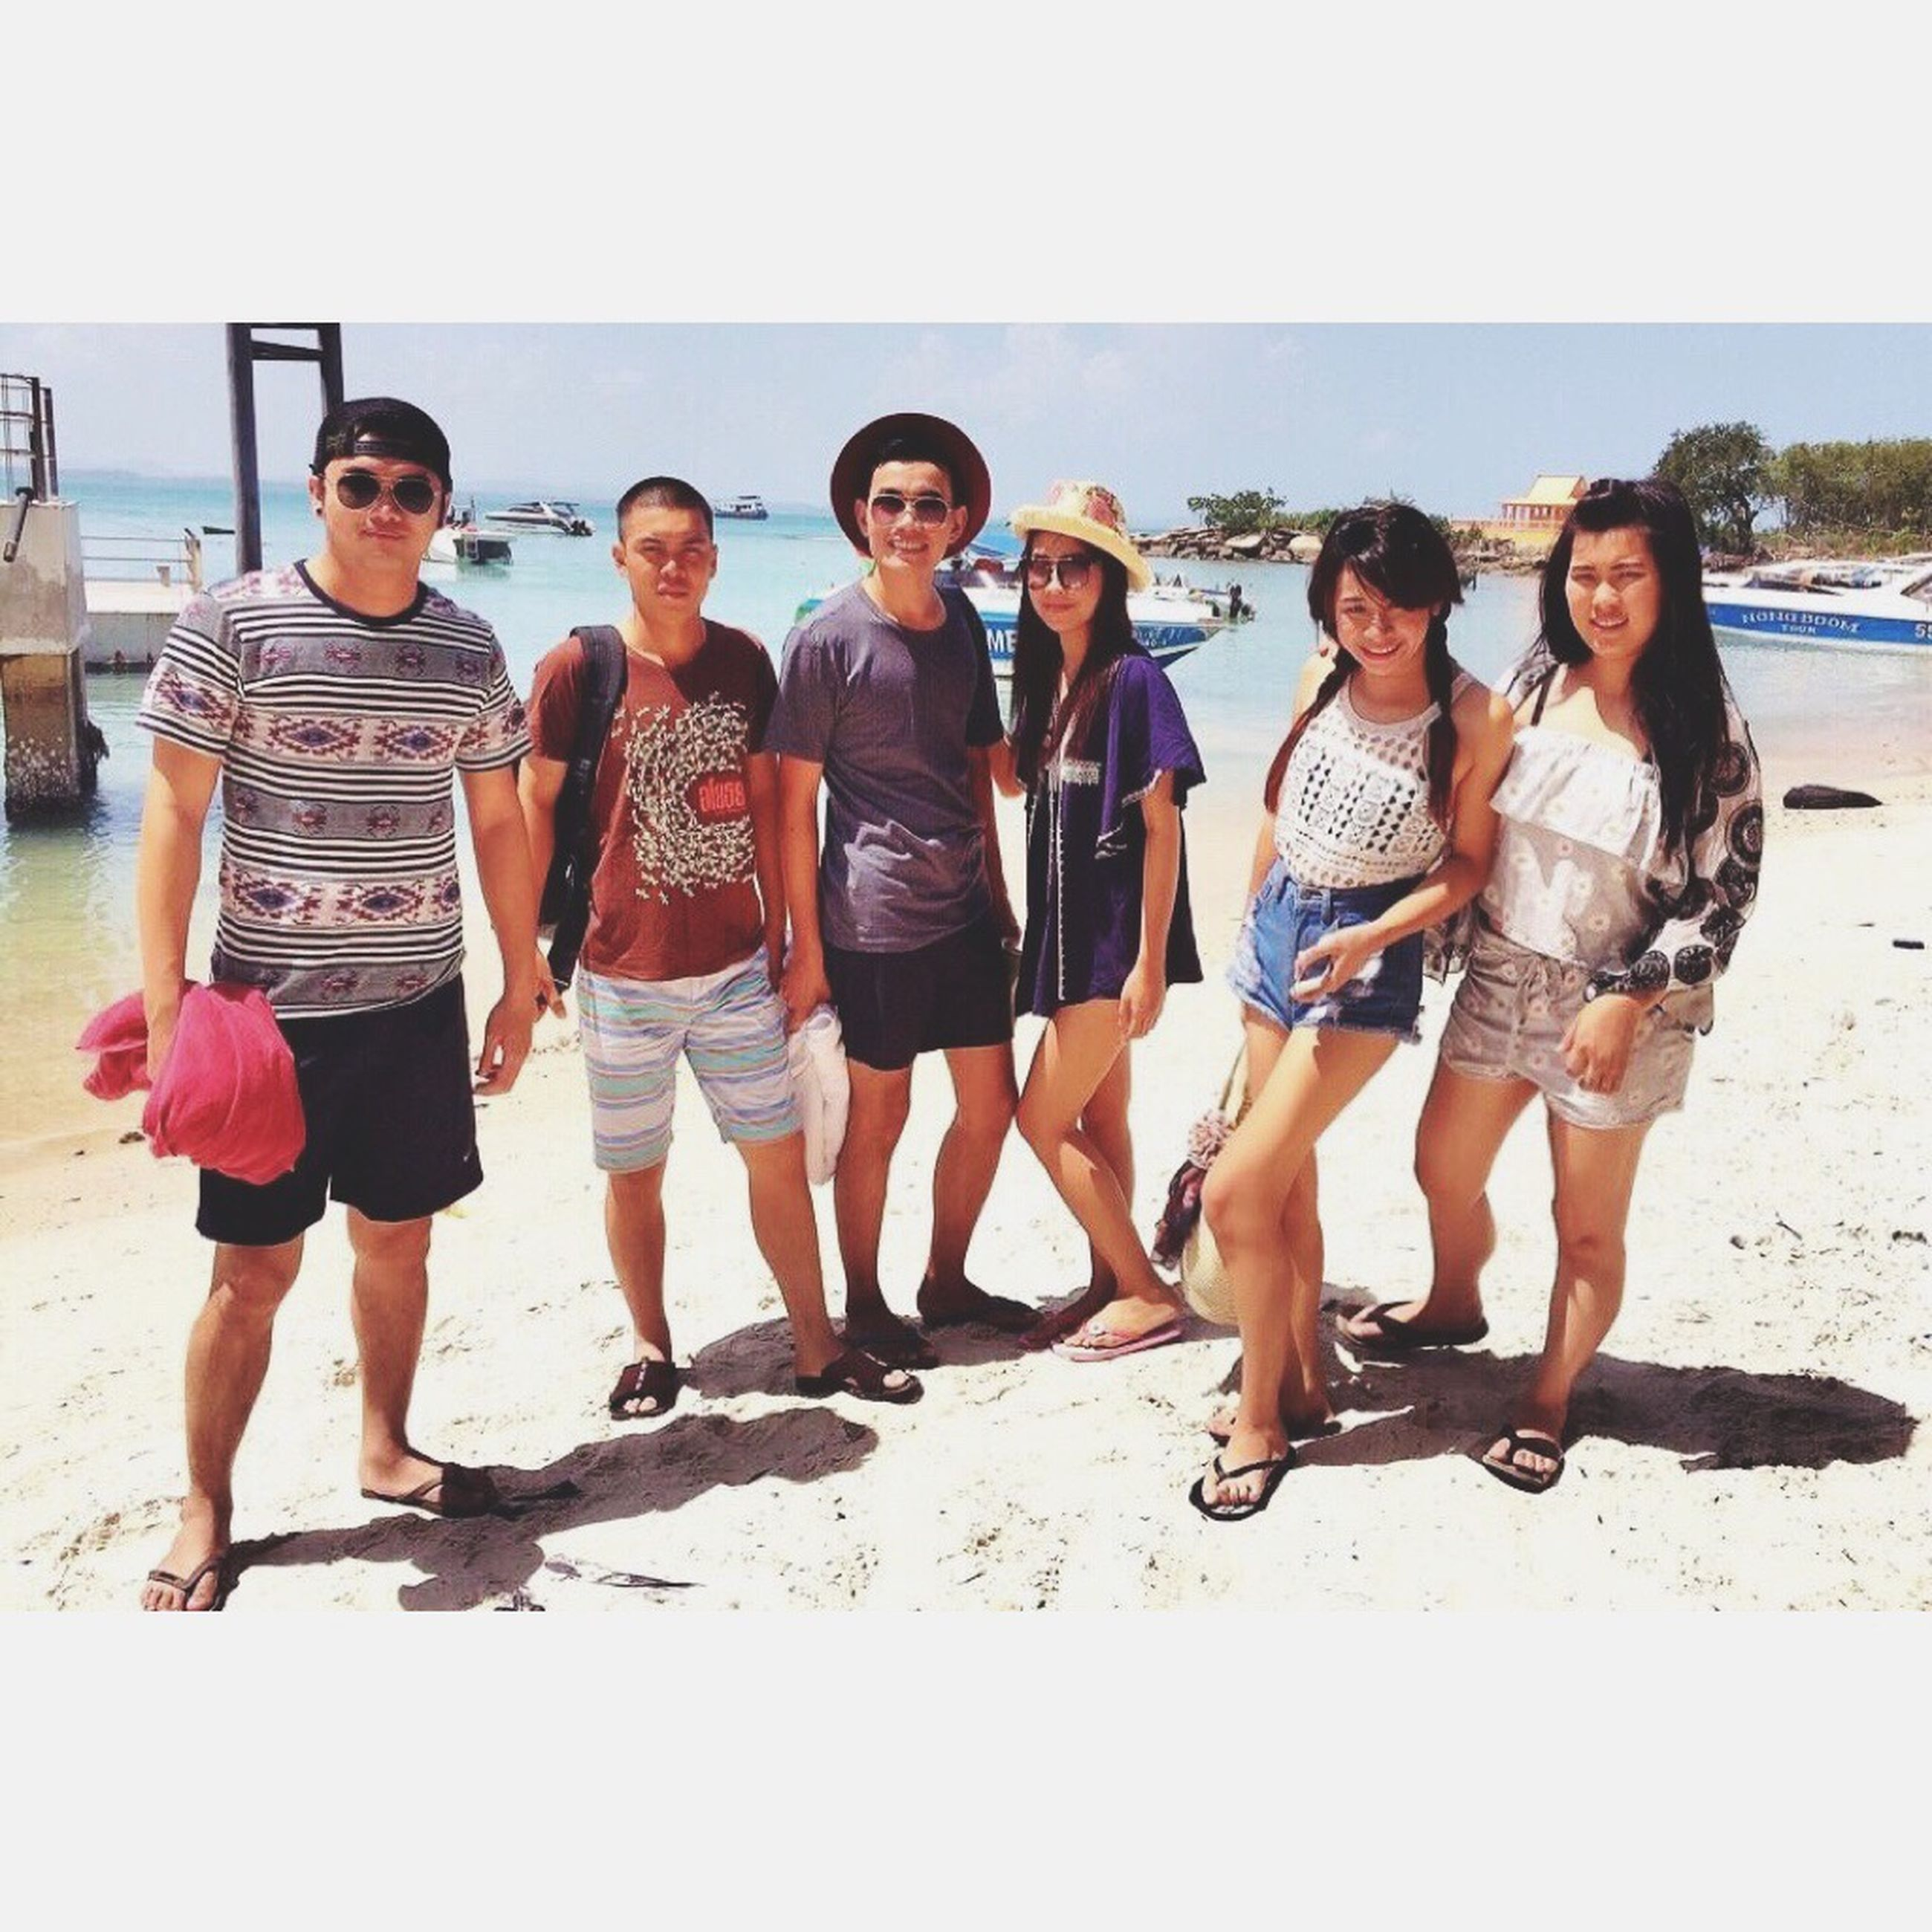 togetherness, bonding, lifestyles, leisure activity, love, beach, friendship, person, young men, young adult, casual clothing, happiness, smiling, vacations, full length, family, sea, looking at camera